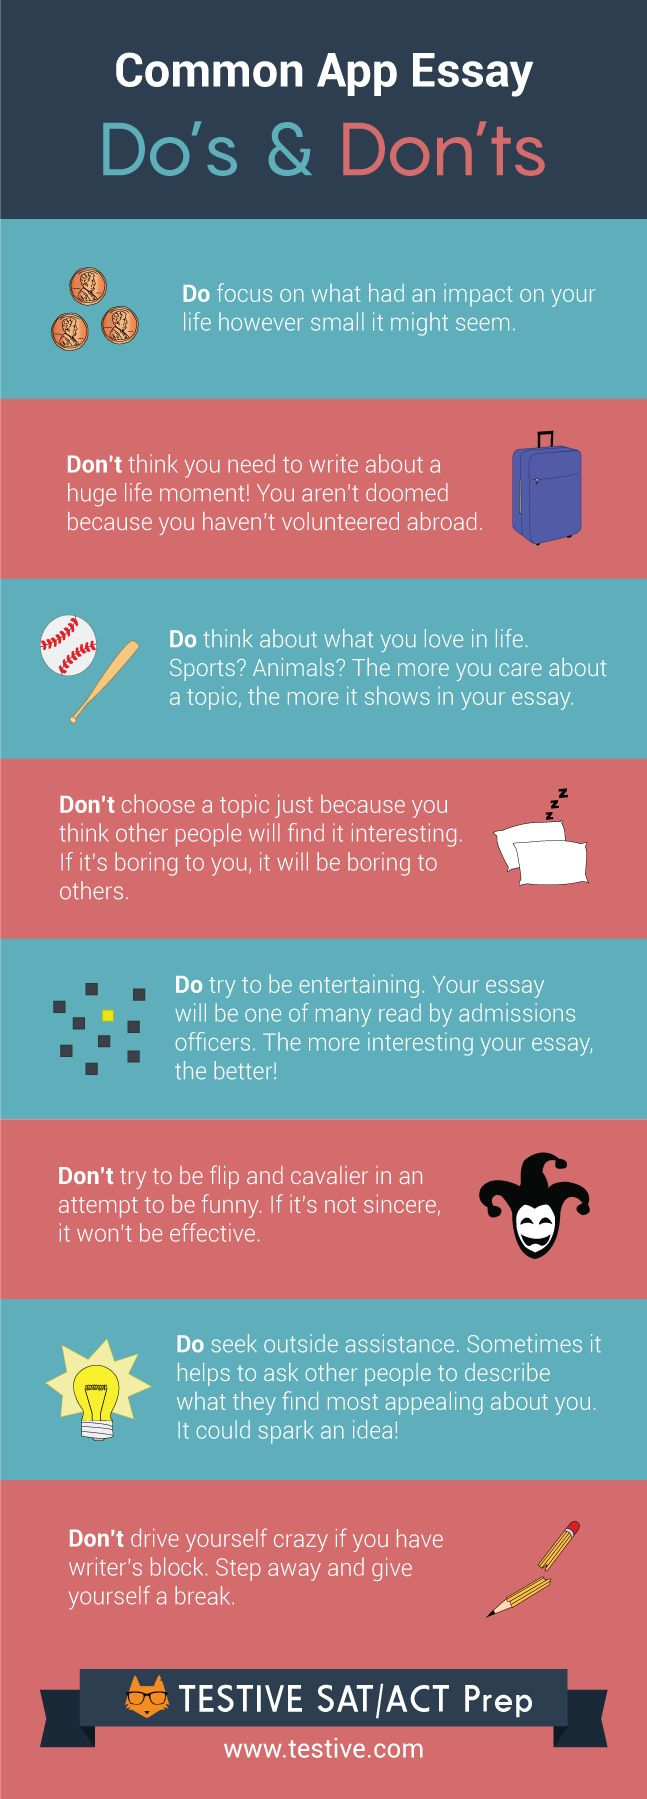 best college essay tips ideas essay tips life  law of attraction quotes